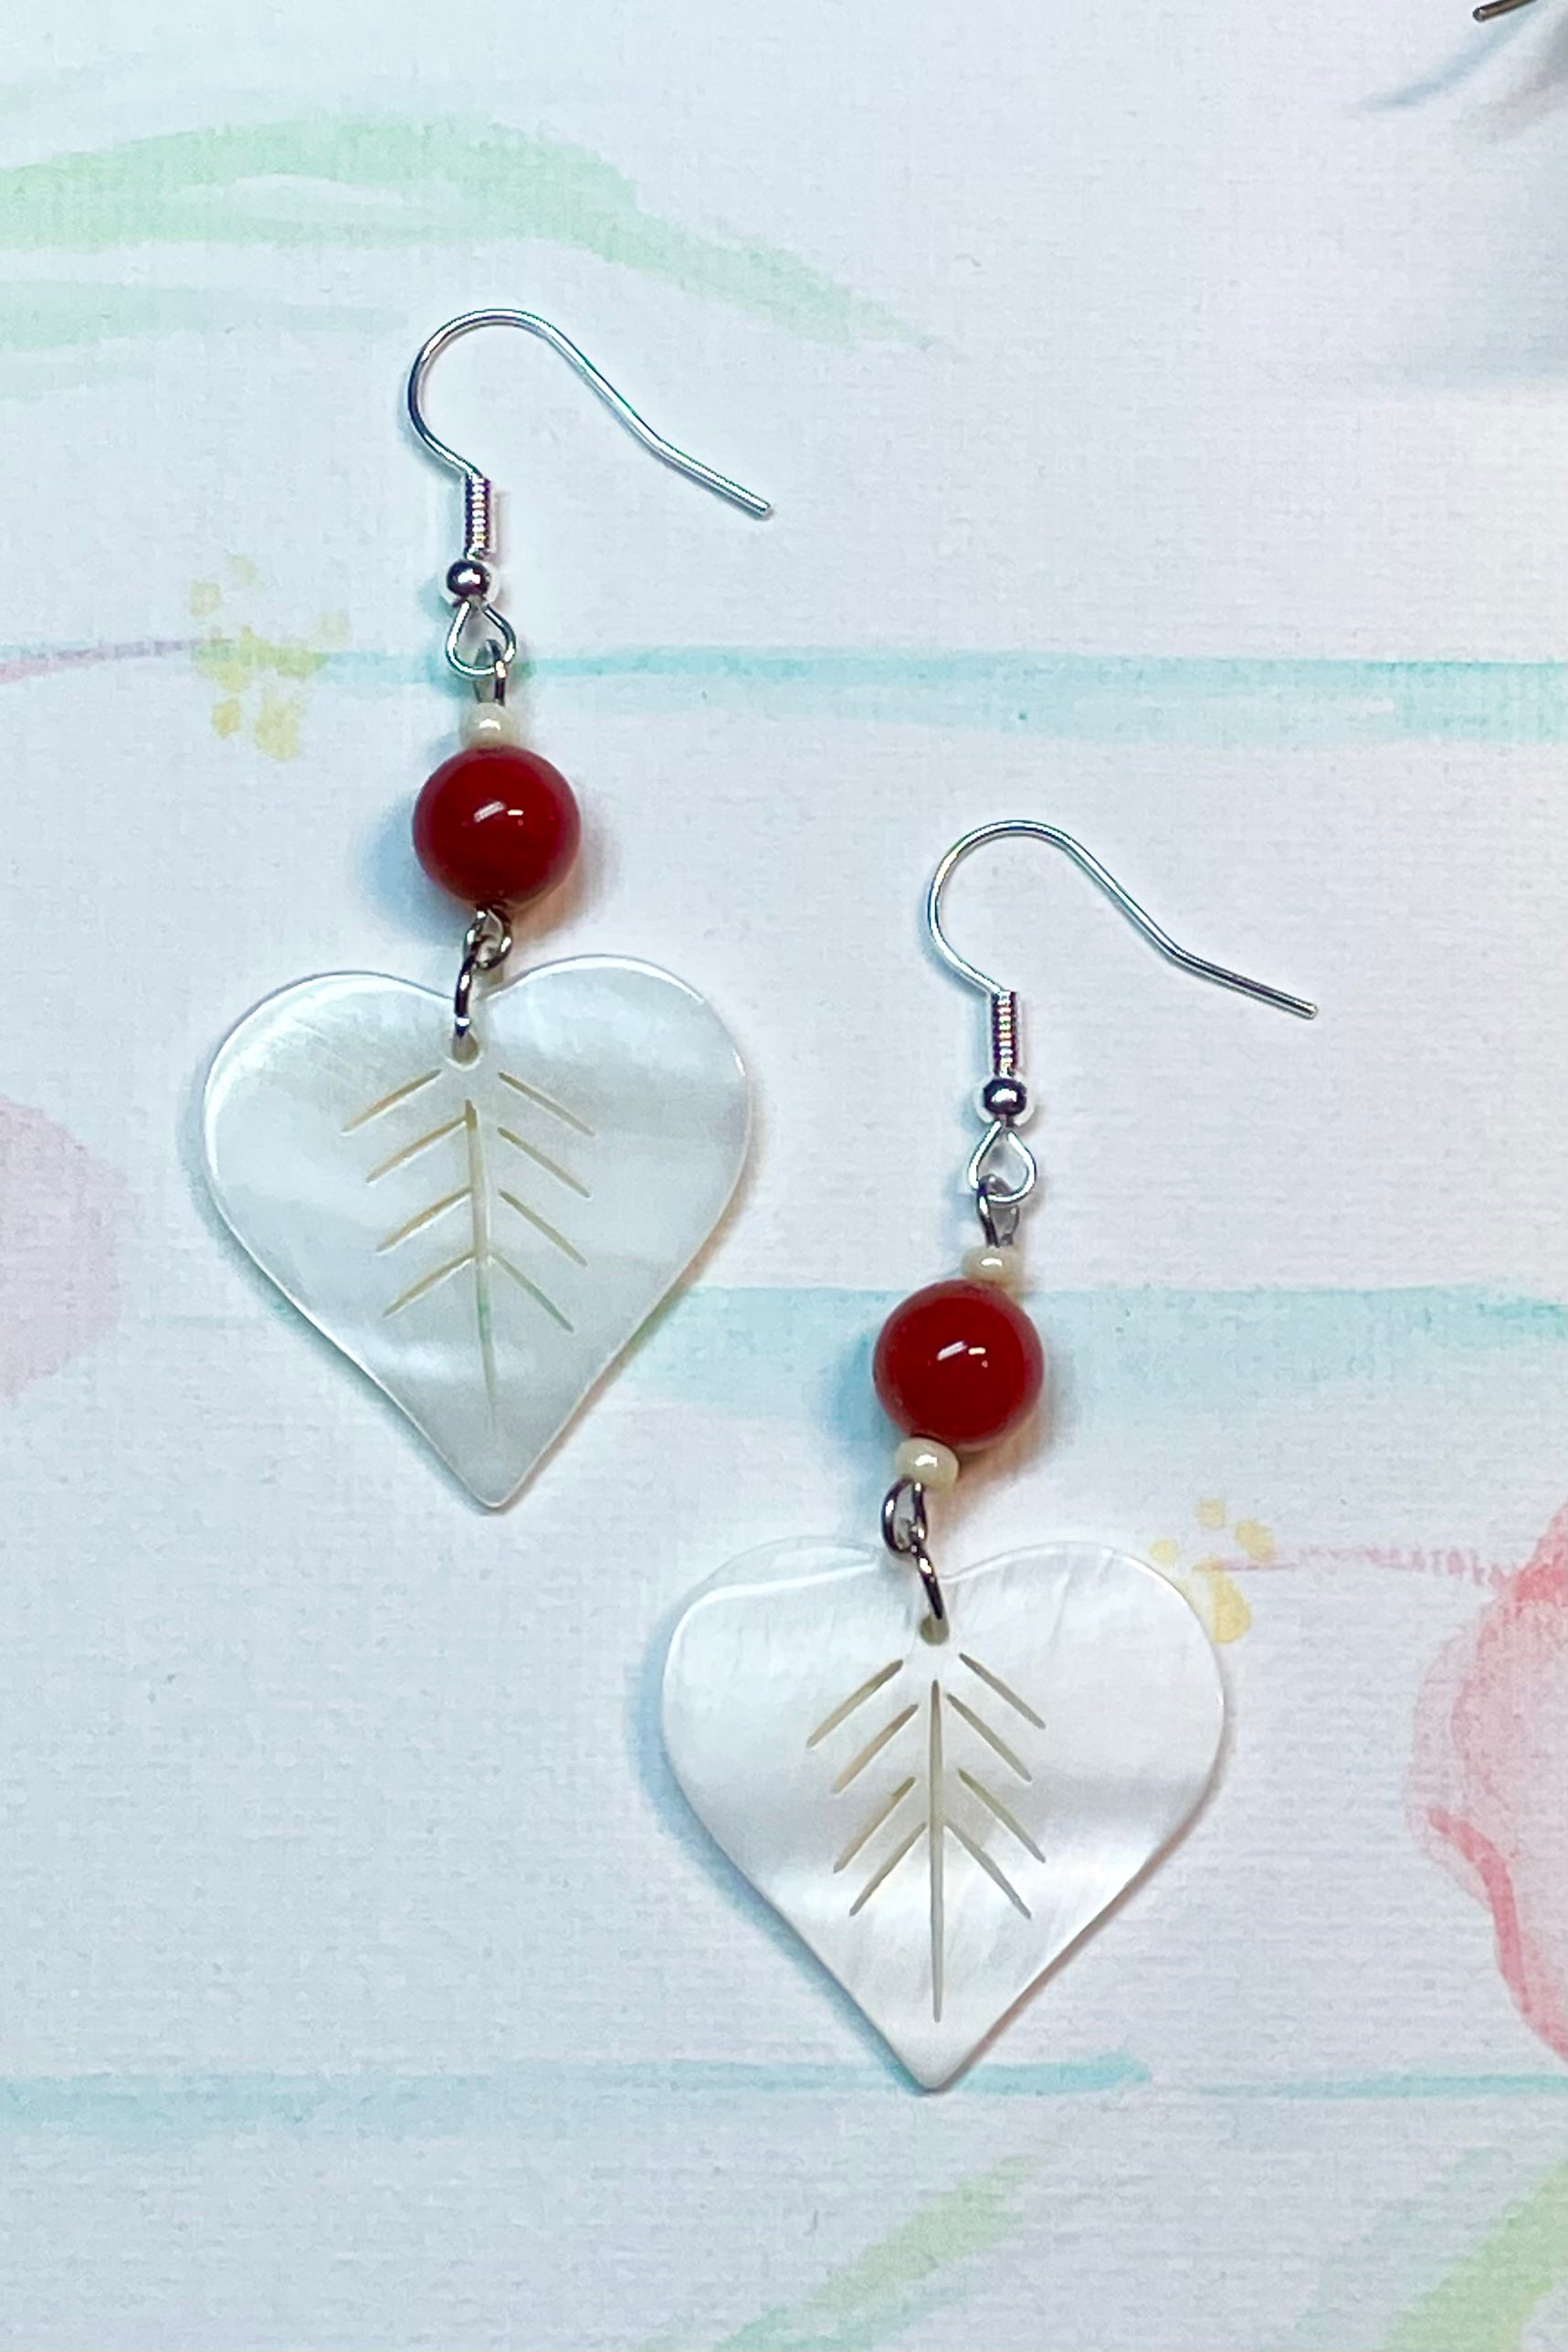 Earrings Serendipity Sunburst Shell heart made with pearly shell hearts that have a leaf pattern cut out